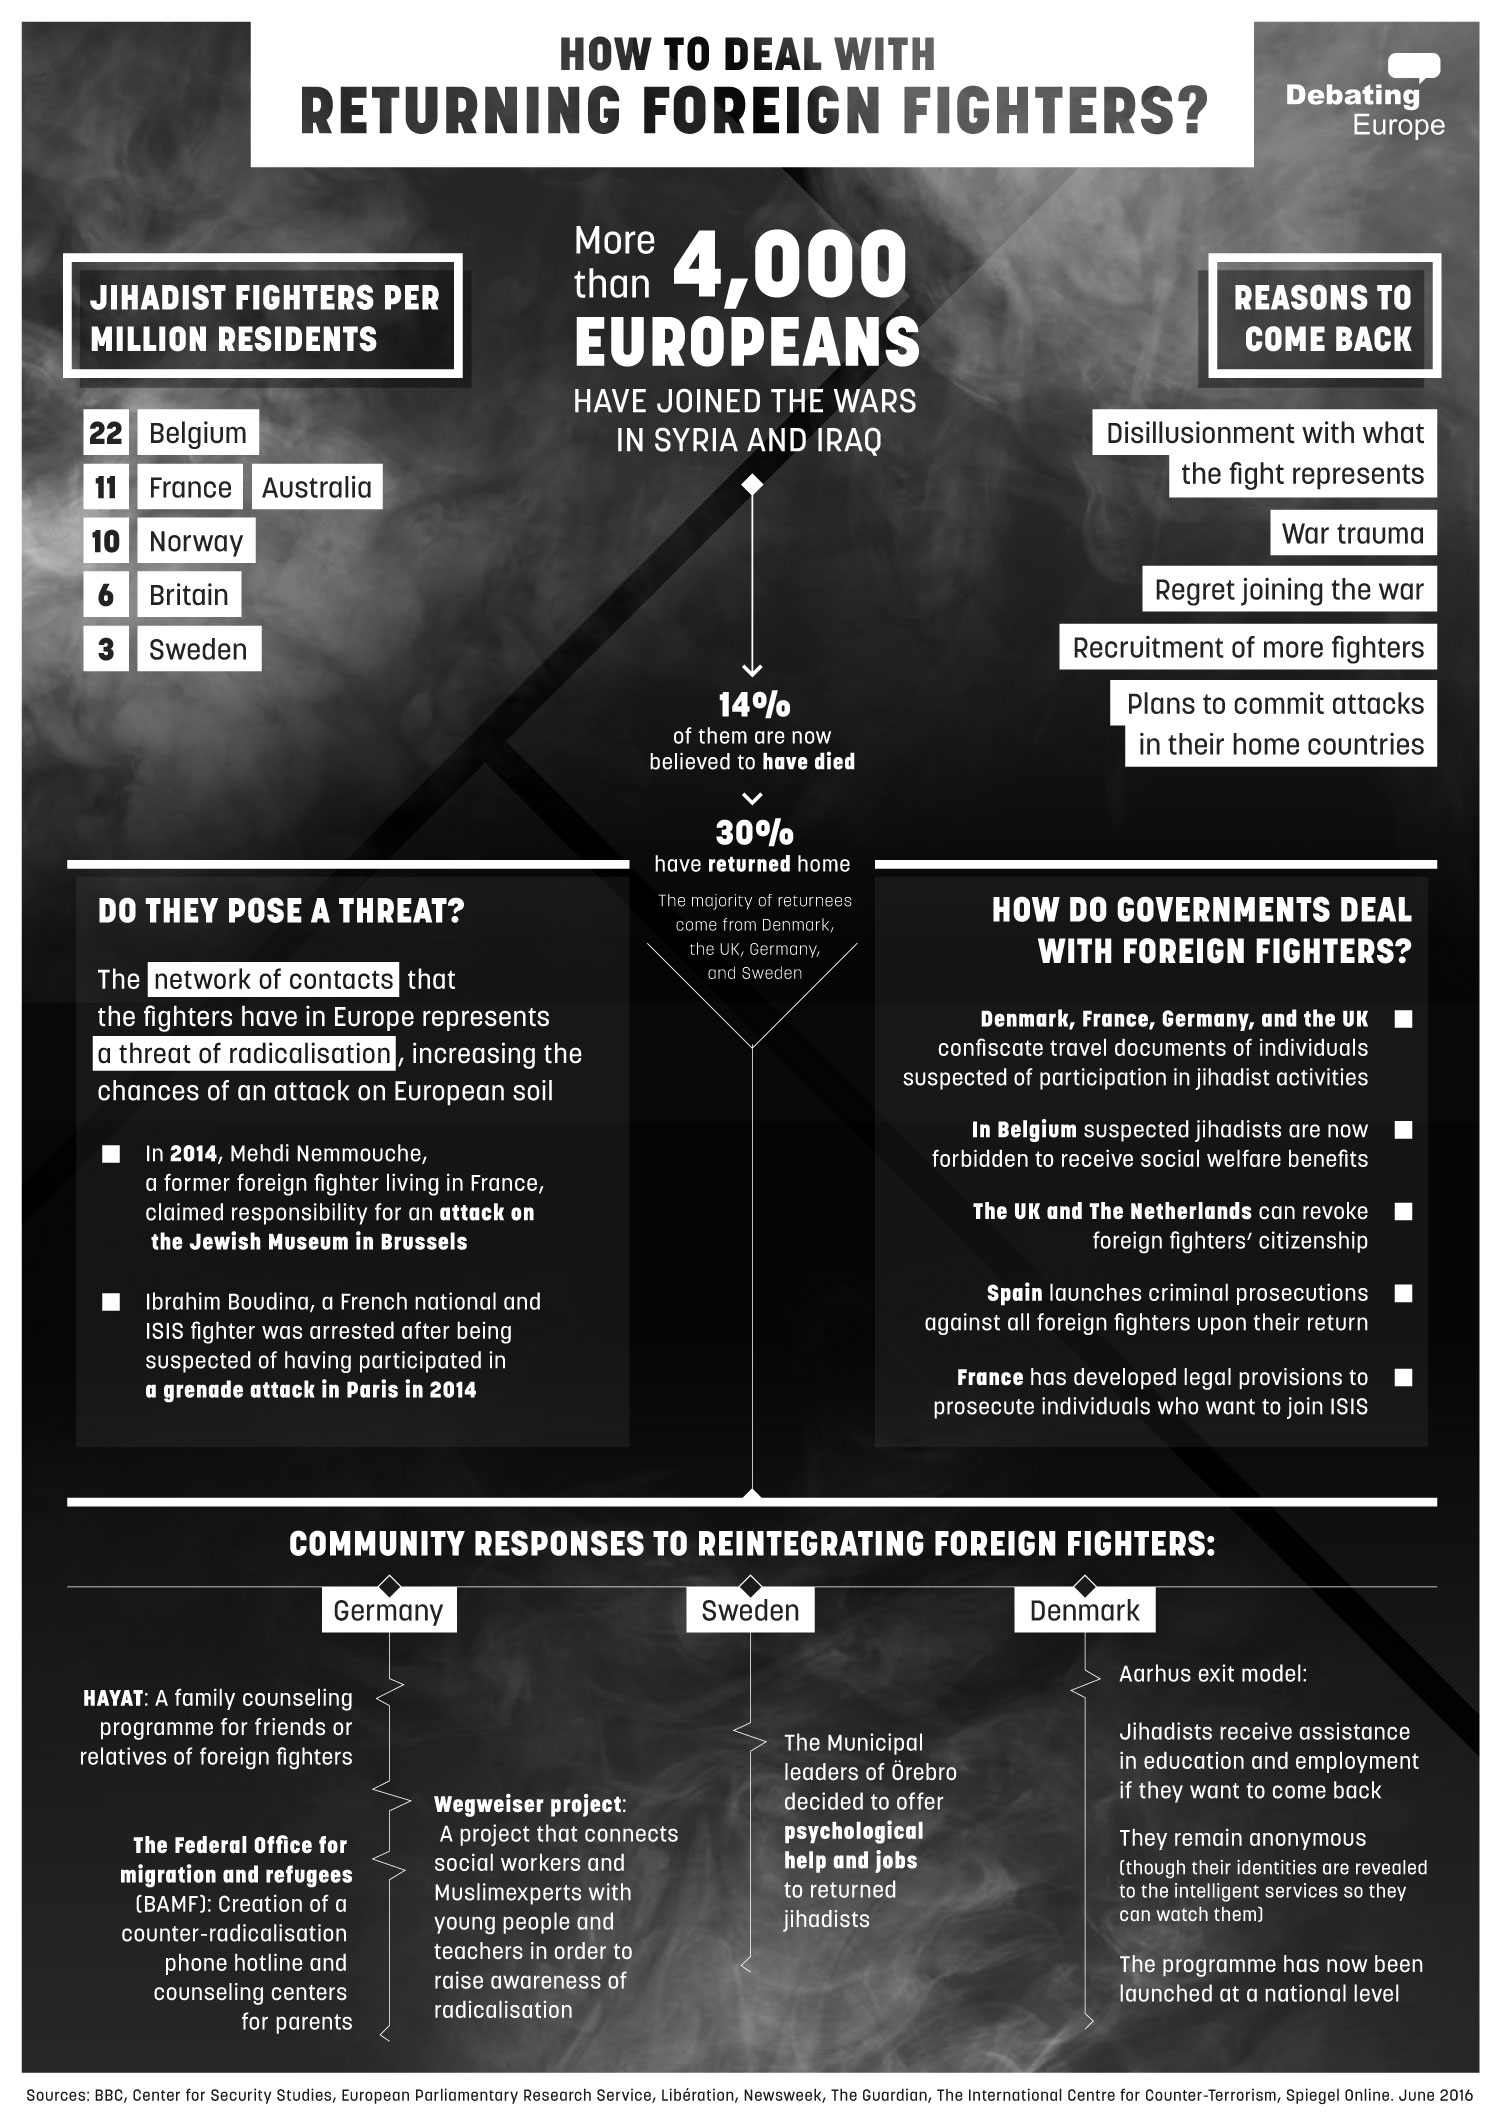 Fighters Europe Com: How Should European Governments Deal With Returning